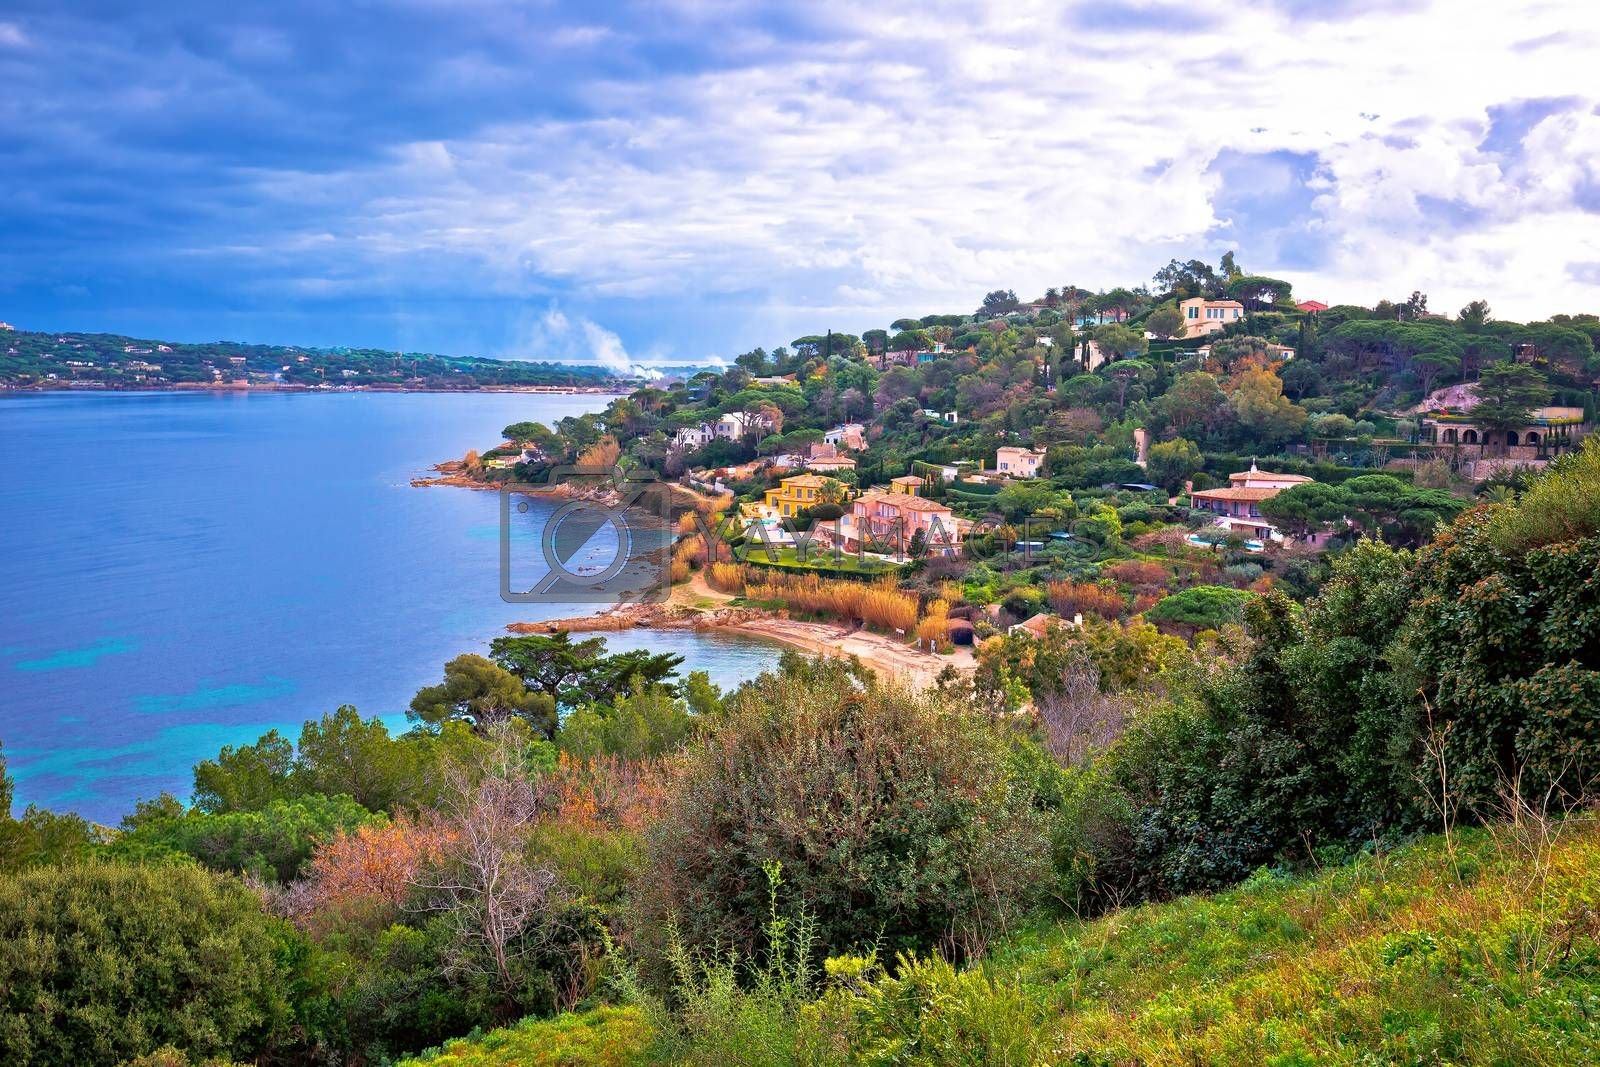 Saint Tropez luxurious coastline and green landscape view, famous tourist destination on French riviera, Alpes-Maritimes department in southern France